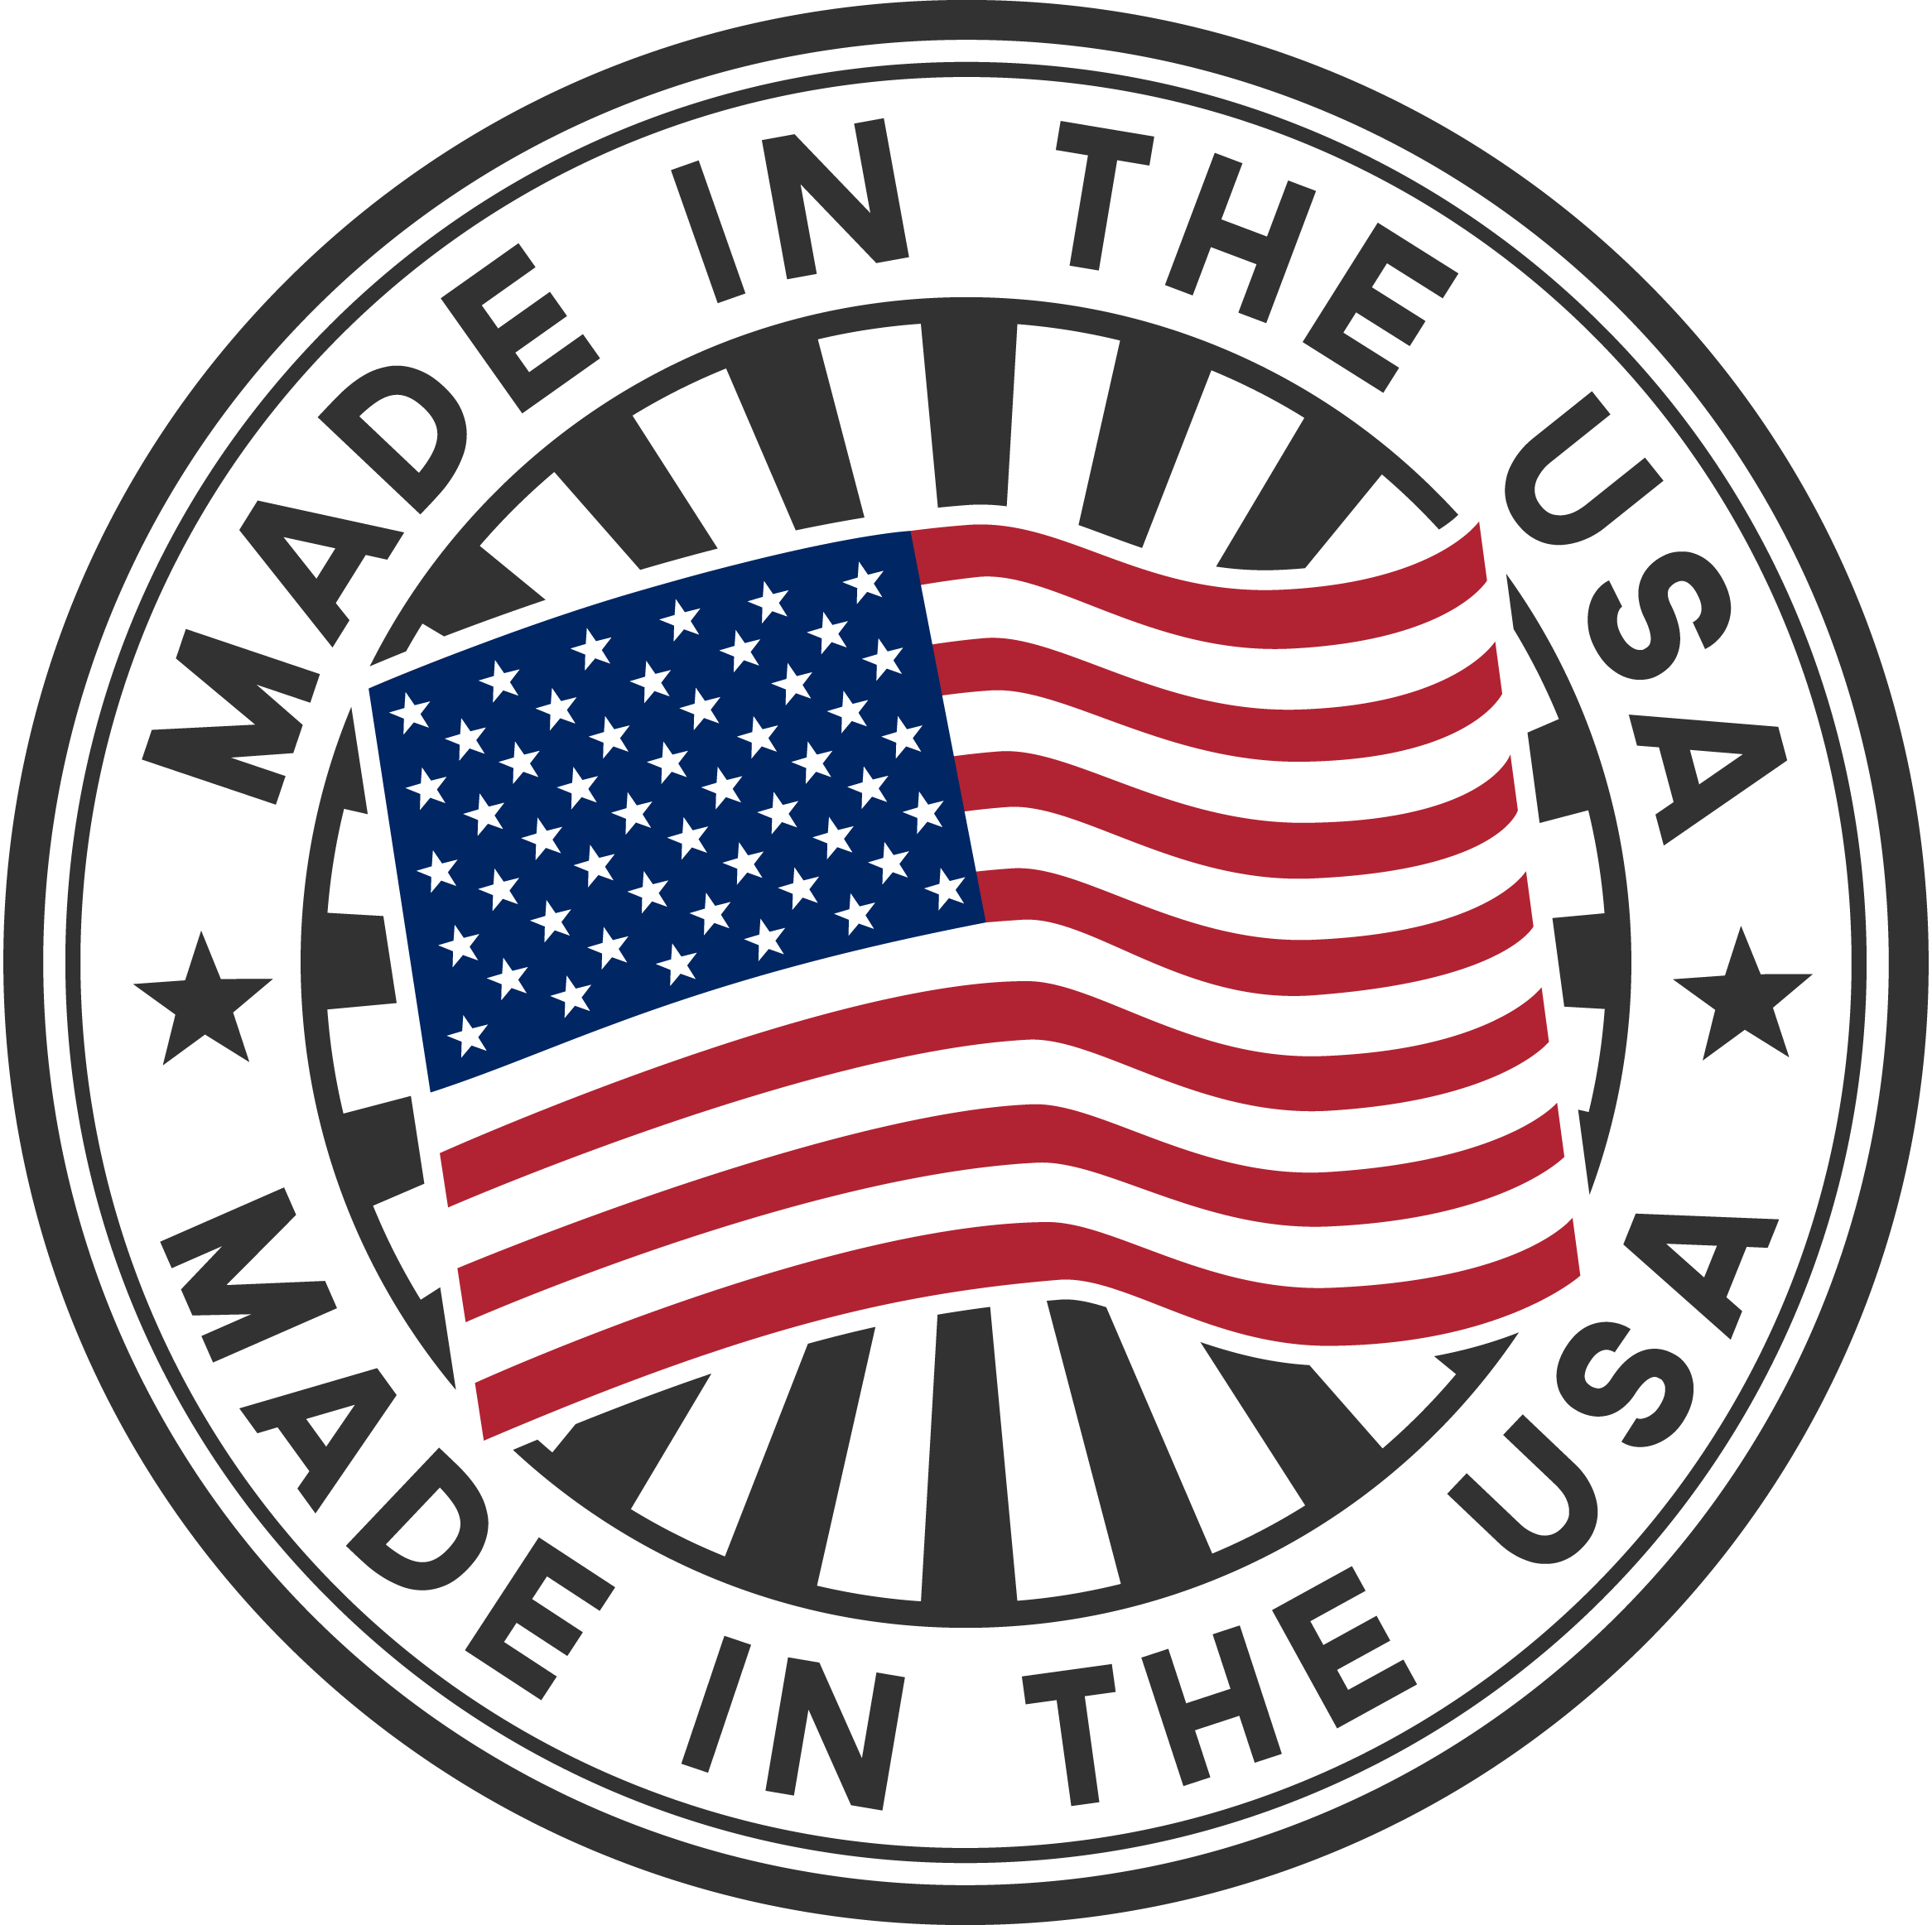 made in the usa png